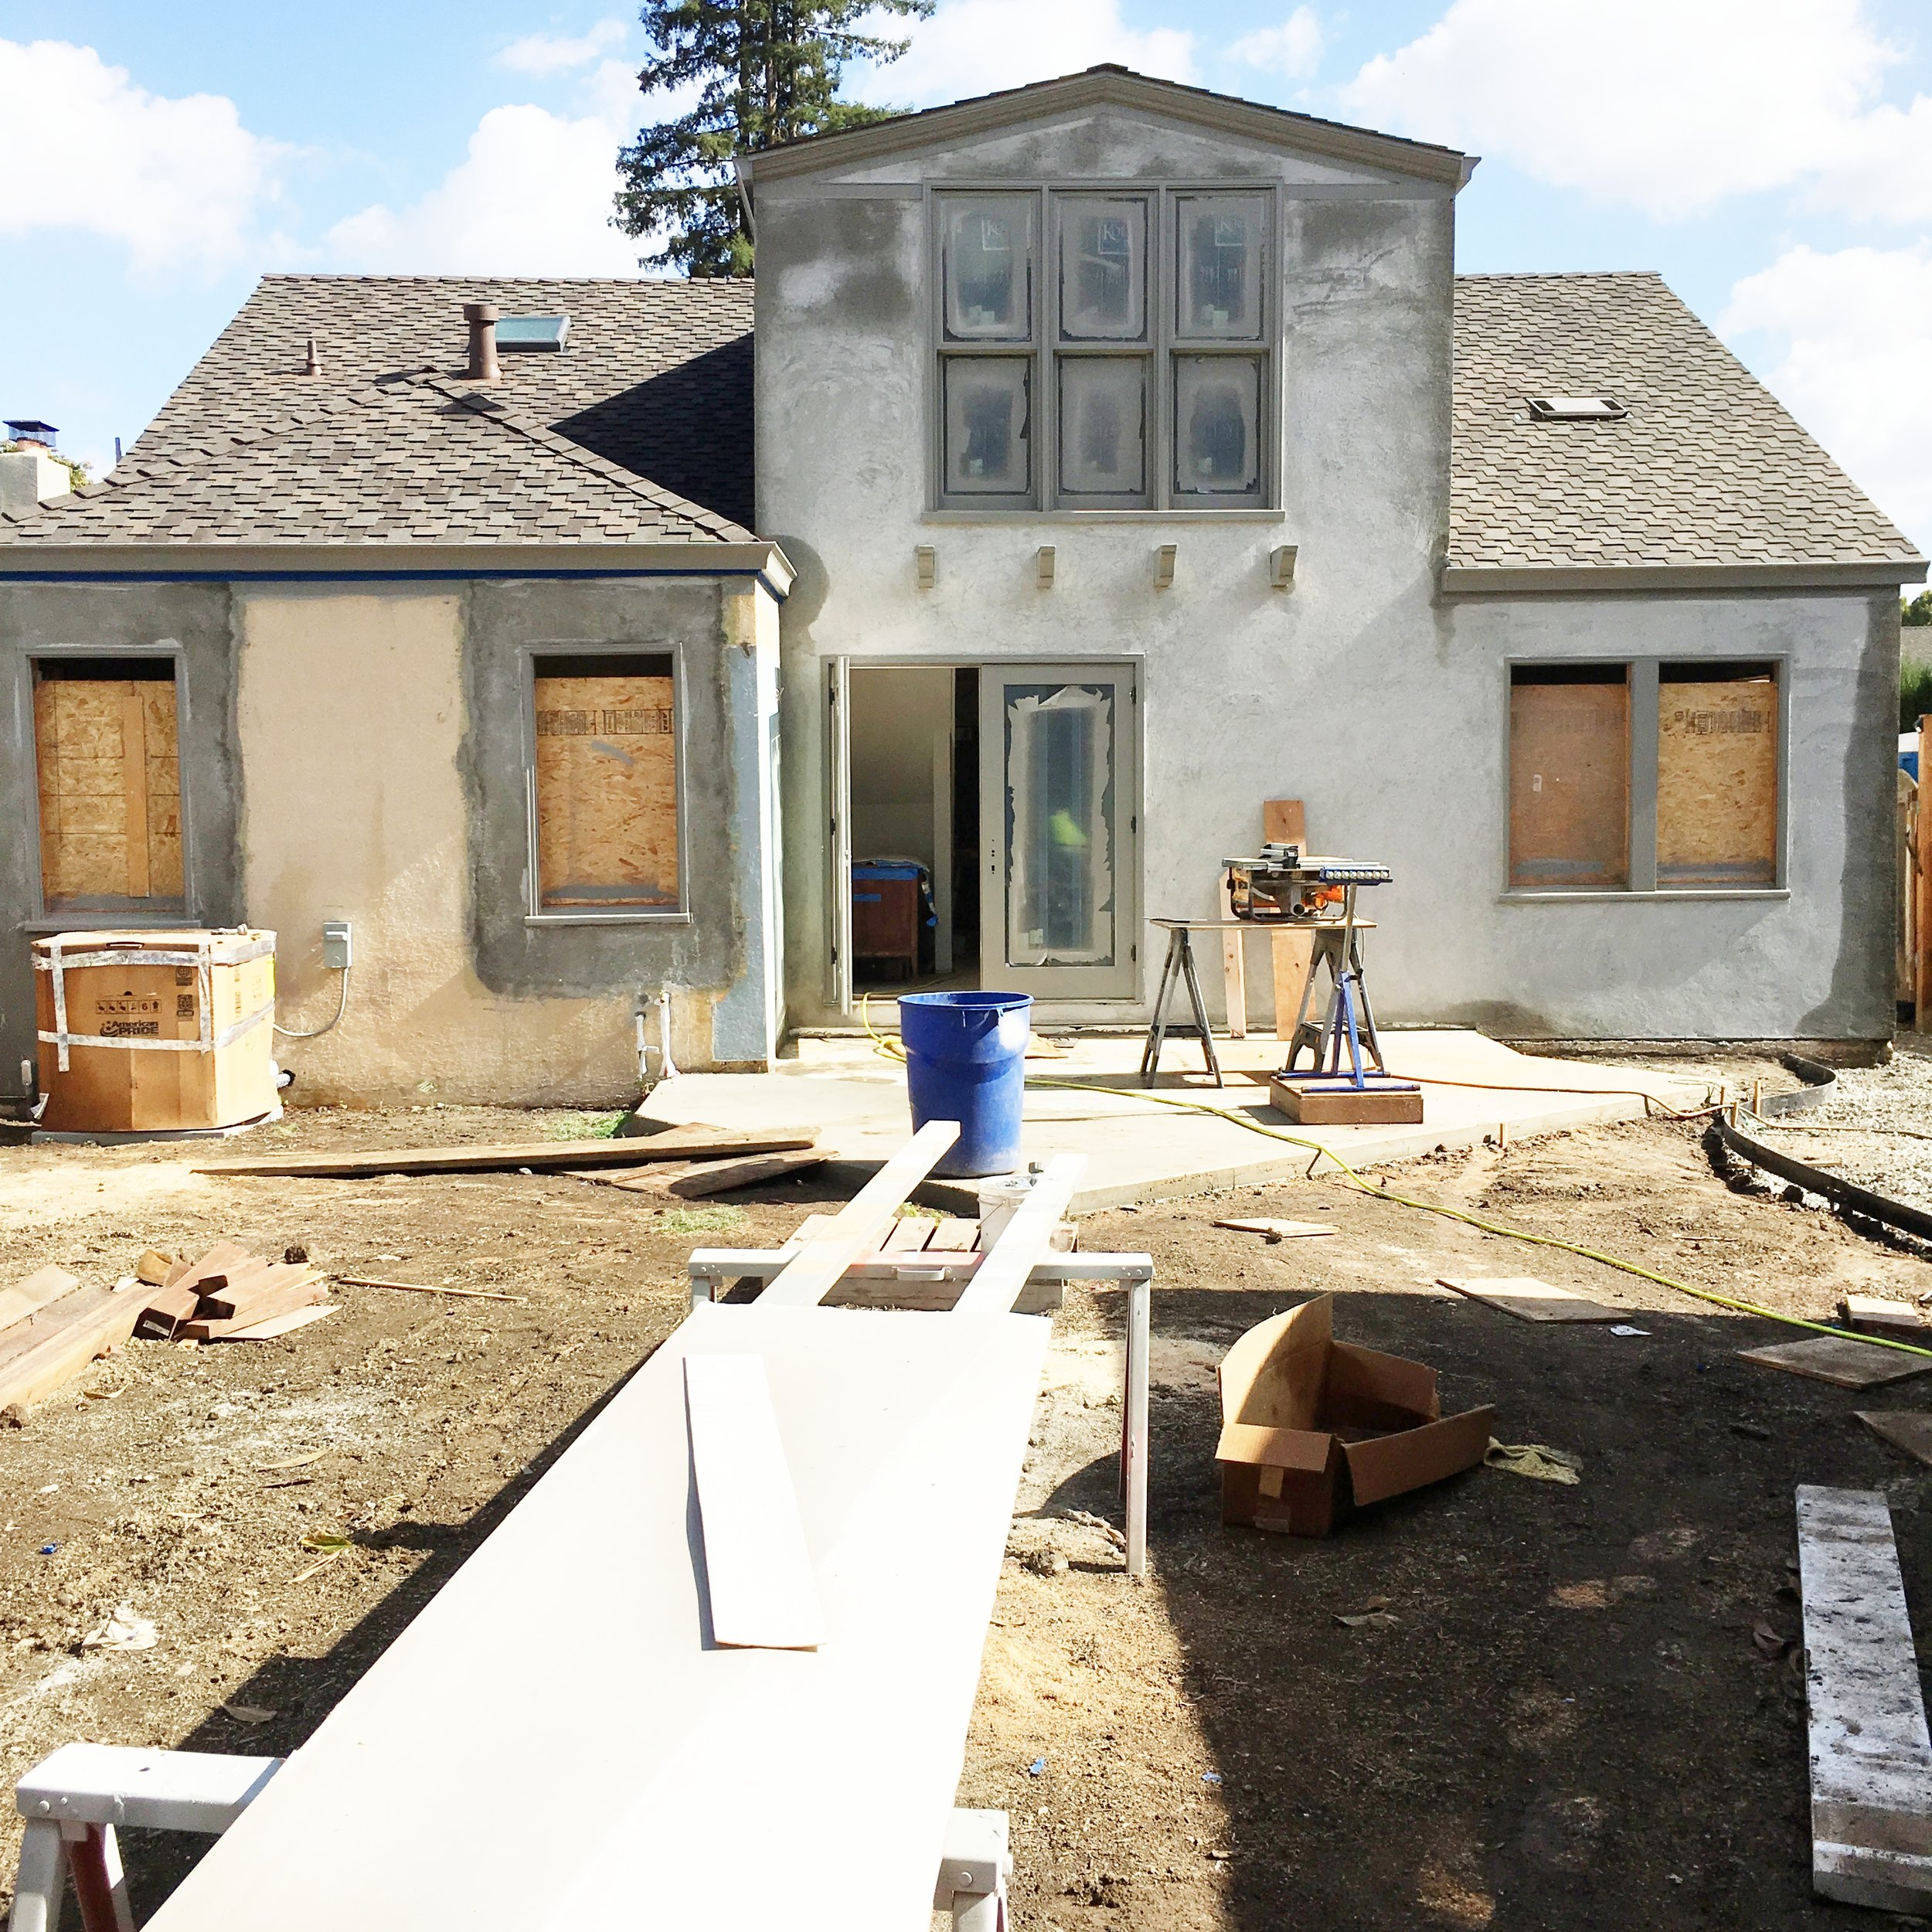 It still looks like a bit of a meth shack but it's coming along. You can see that the exterior trim has all been painted Chelsea Gray (love that color). The base of the back patio has been poured and final stucco will go on later this week. We are mixing the house paint color into the stucco so we don't have to paint. Fingers crossed.